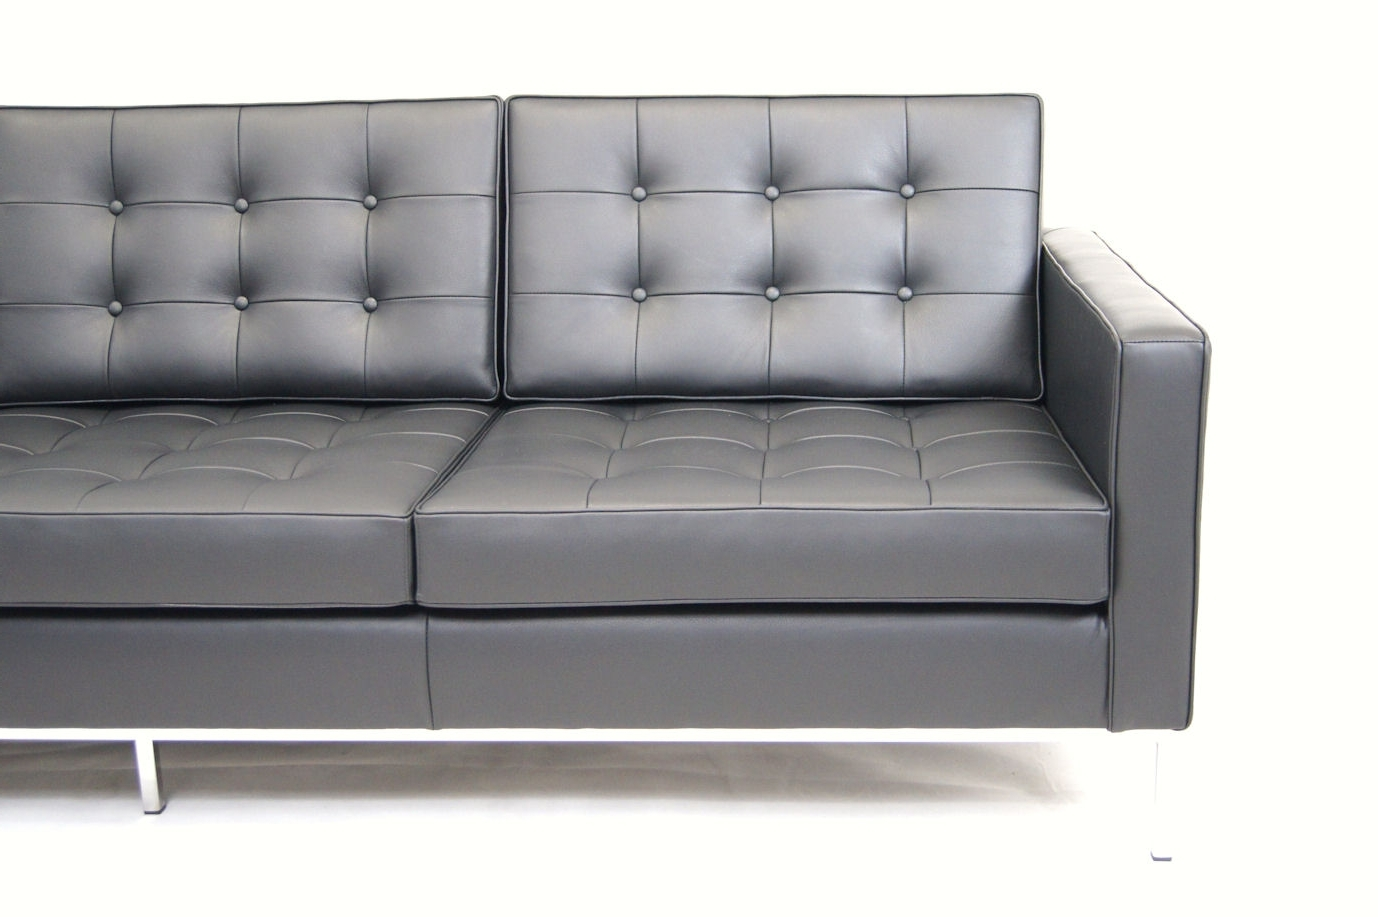 Newest Florence Knoll Leather Sofas Regarding Florence Knoll Sofa Canada « House Plans Ideas (View 14 of 15)